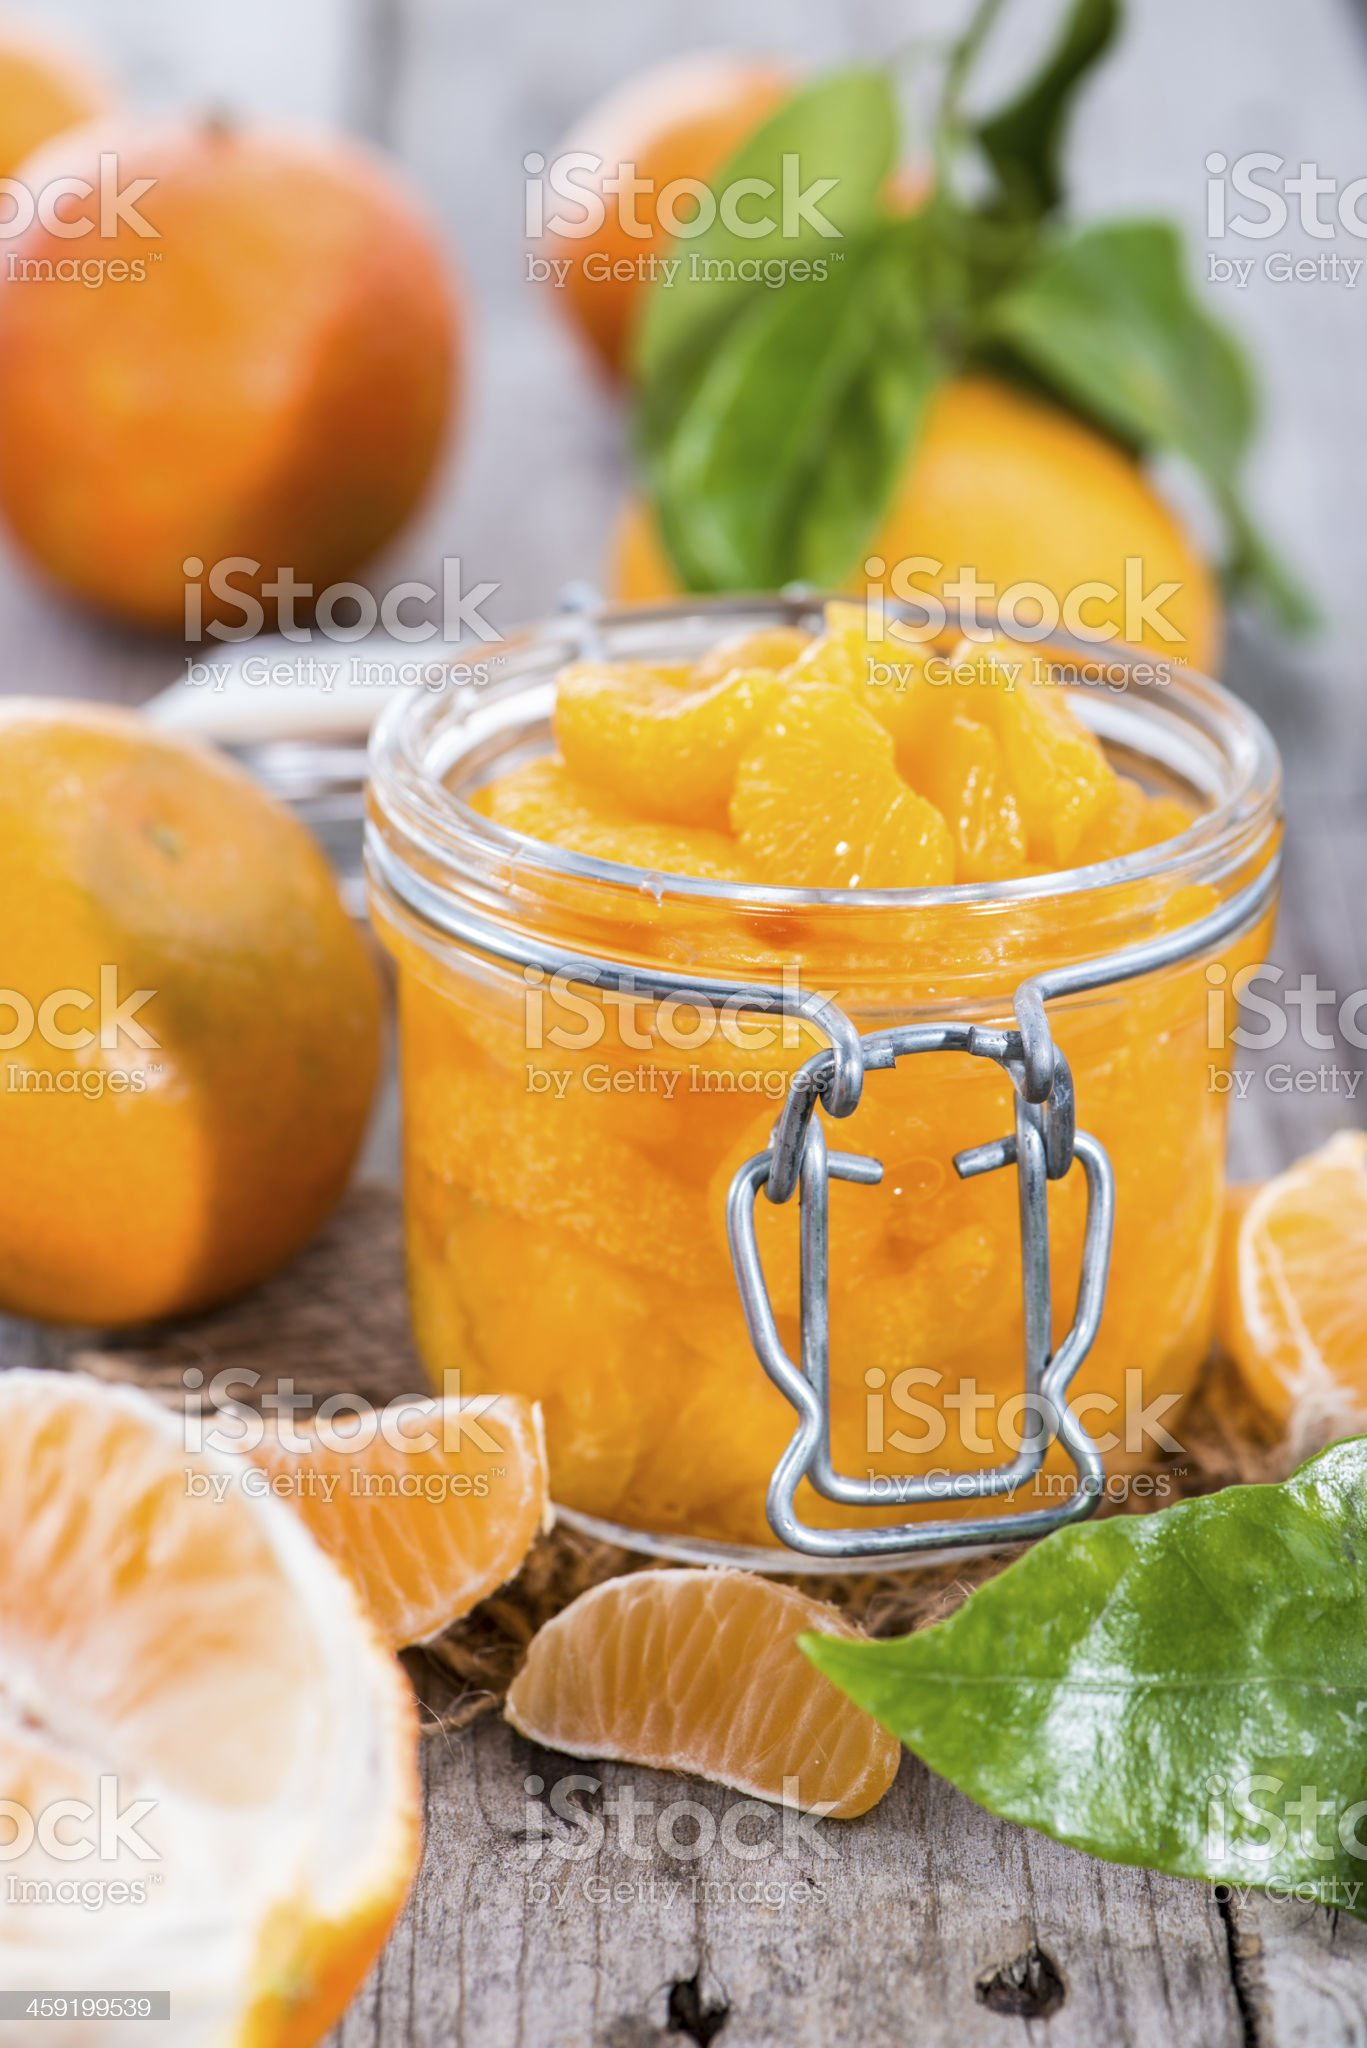 Heap of Preserved Tangerines royalty-free stock photo